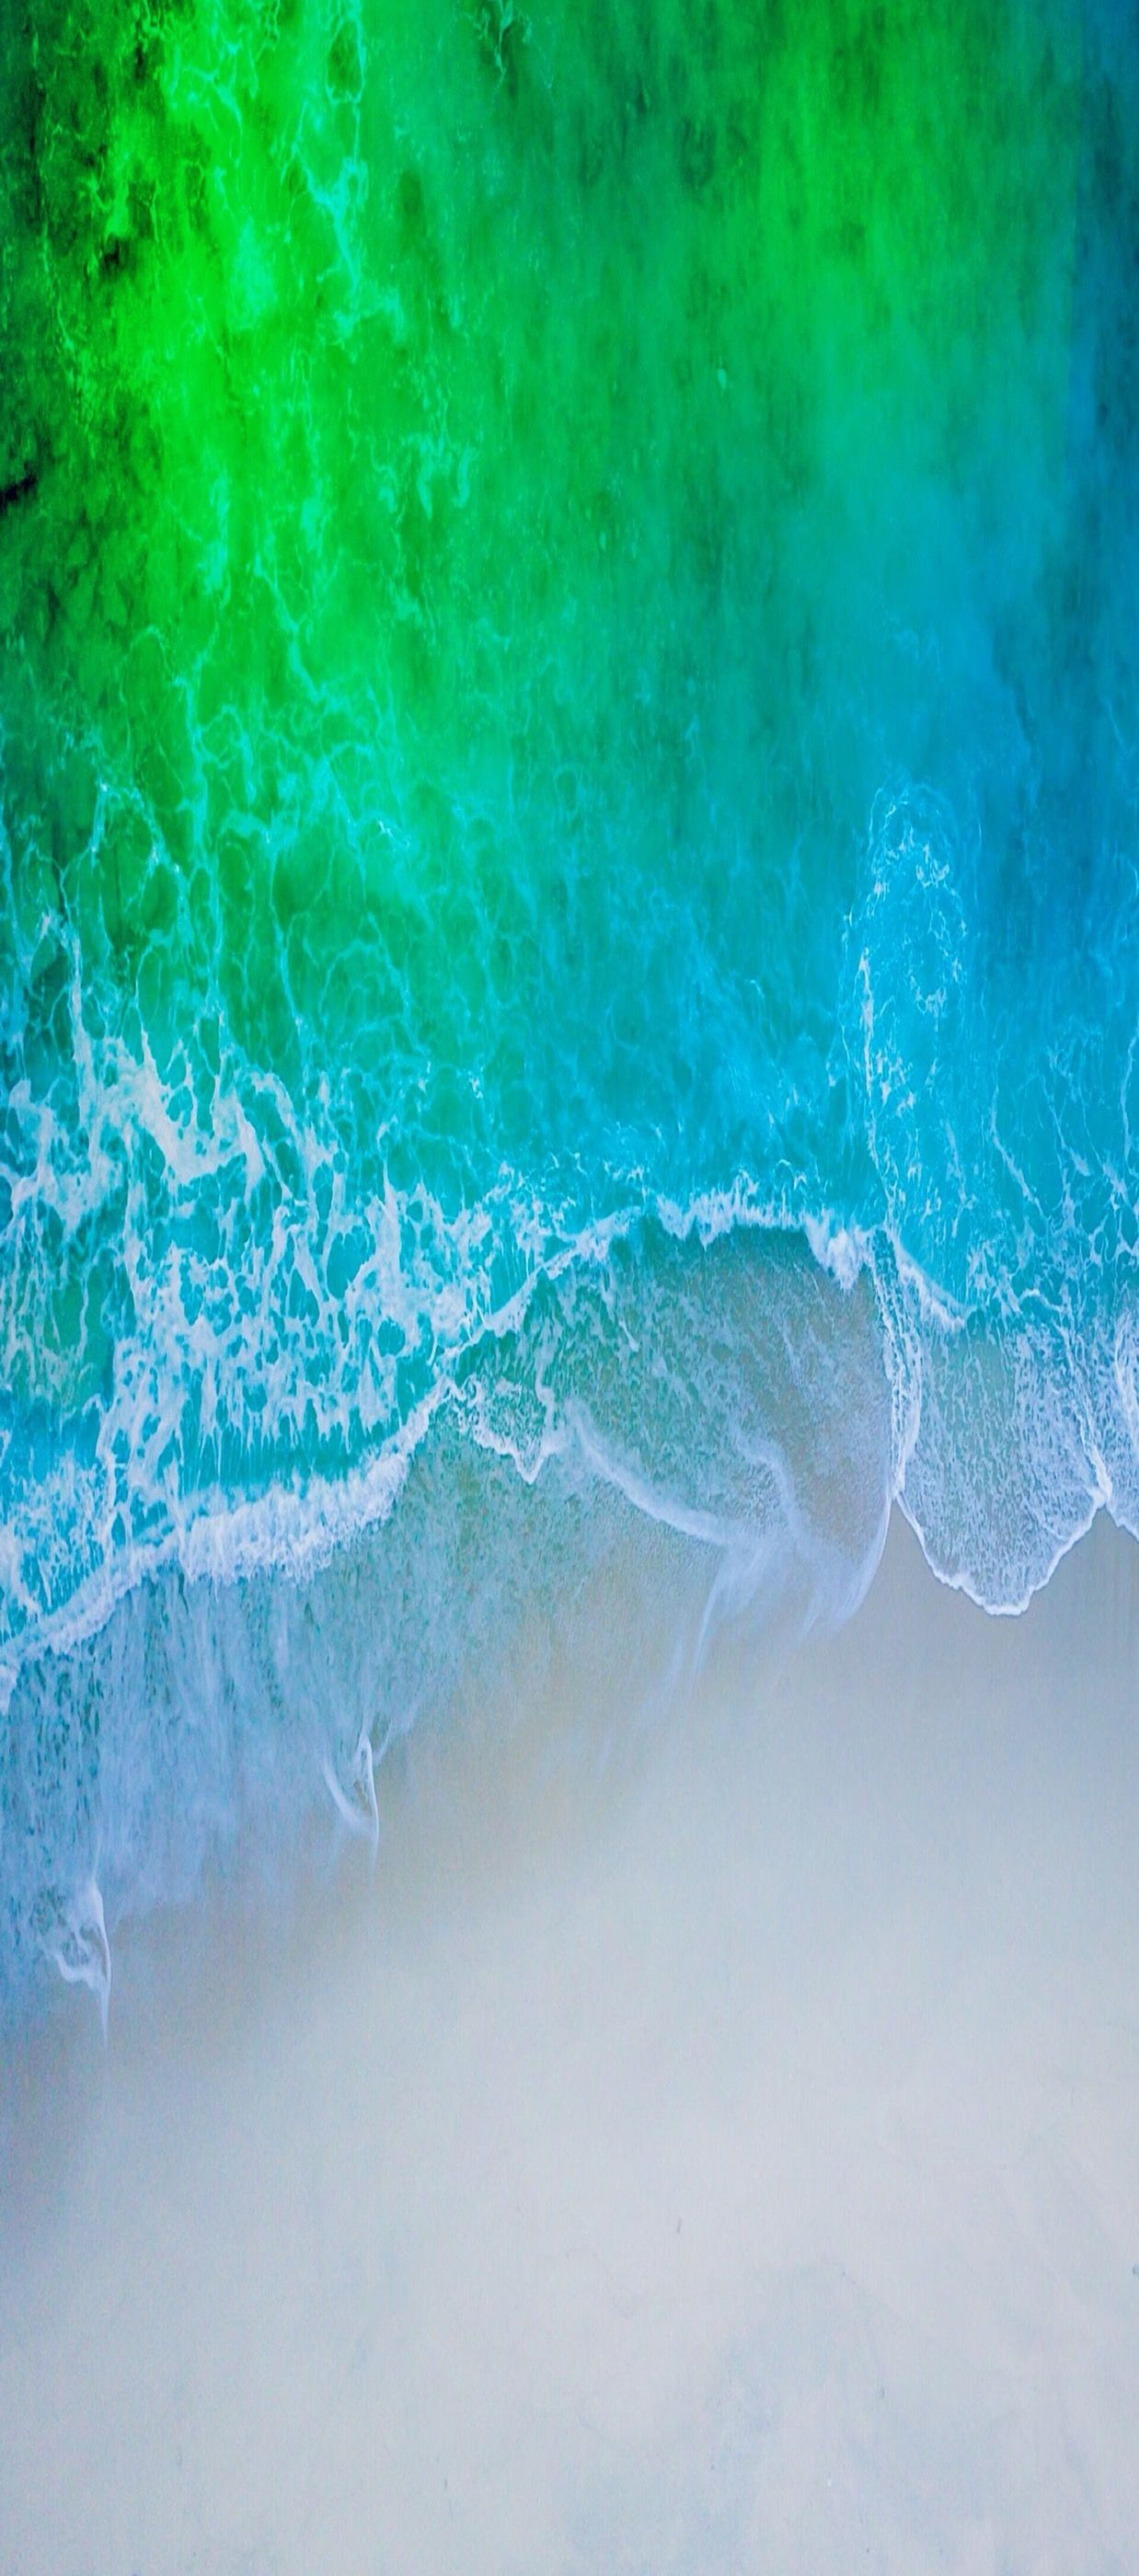 iOS 11 iPhone X Aqua blue Water beach wave ocean apple 1238x2800